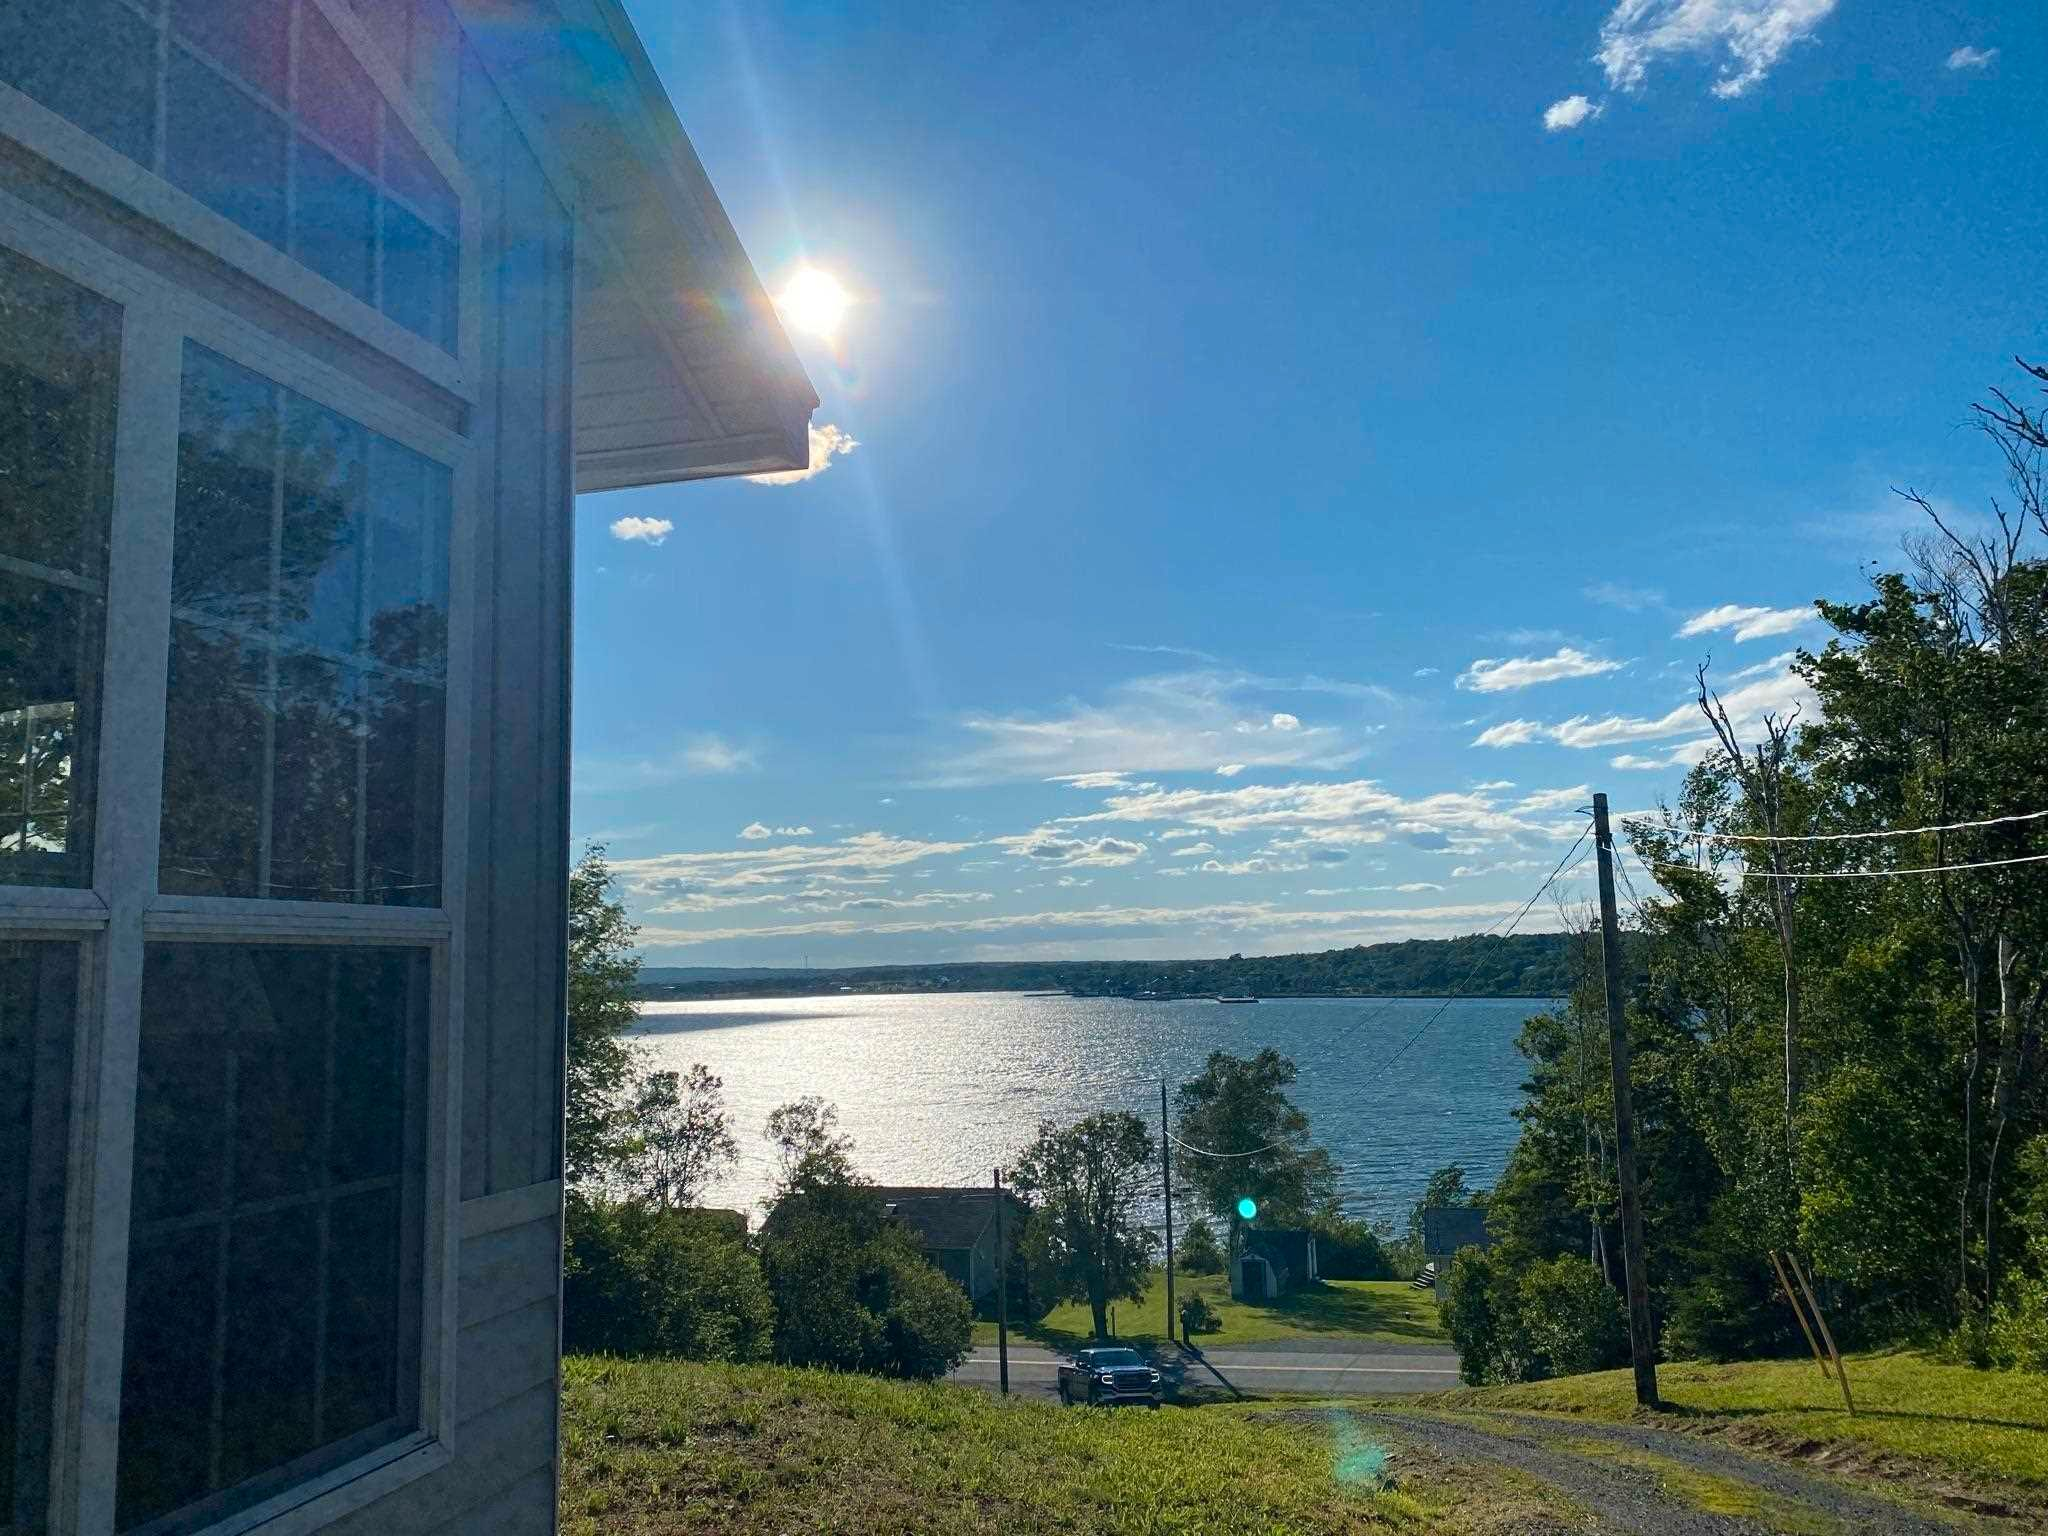 Main Photo: 206 Lower Road in Pictou Landing: 108-Rural Pictou County Residential for sale (Northern Region)  : MLS®# 202115670